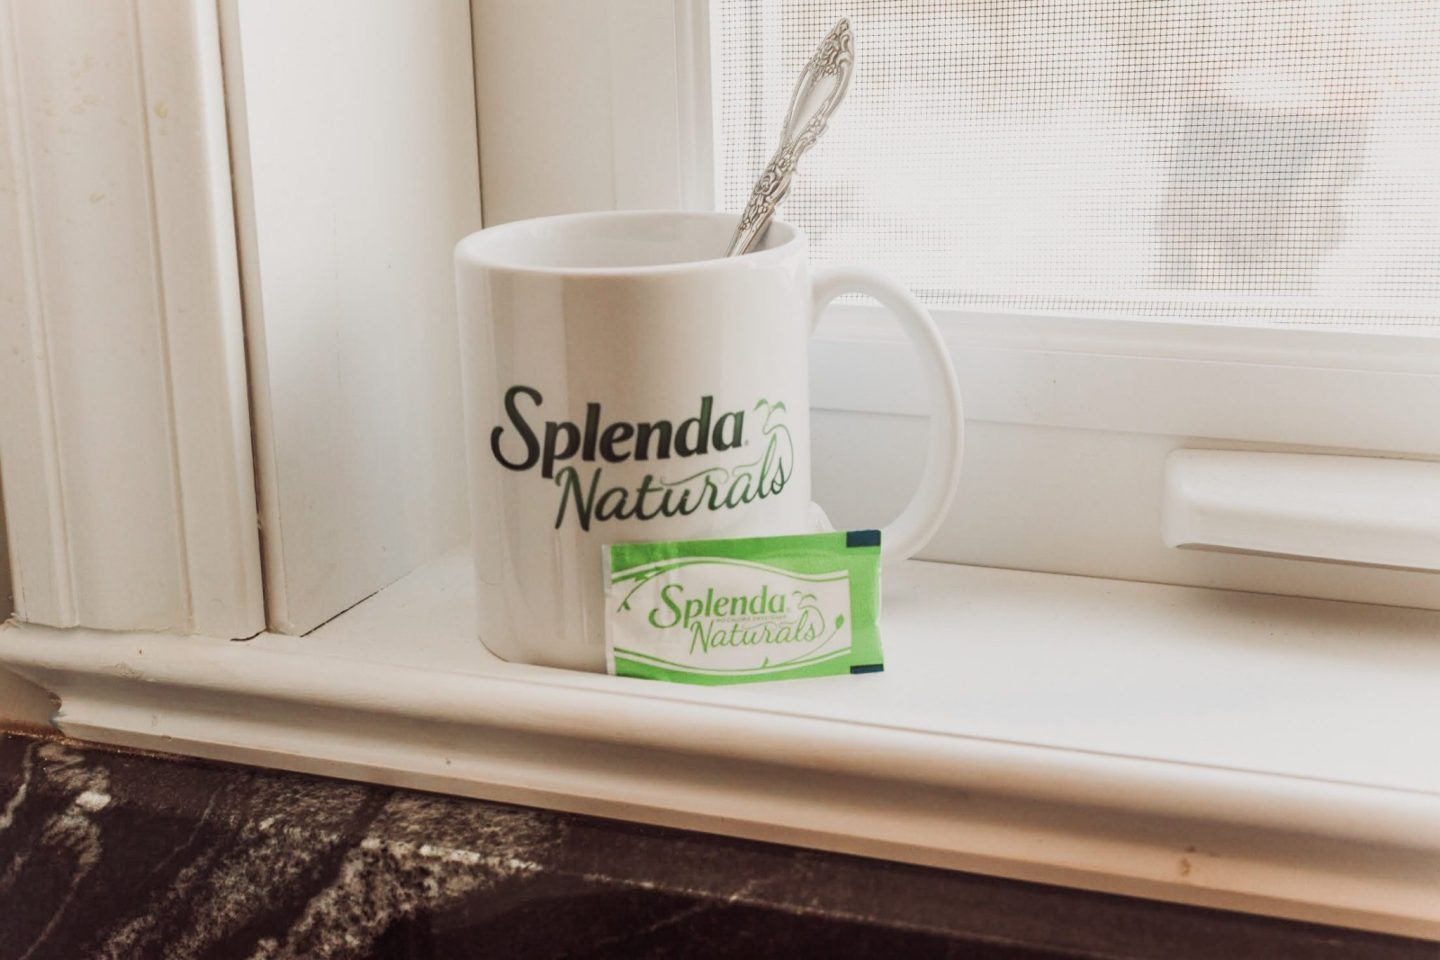 Splenda Naturals Helping To Kickstart 2019